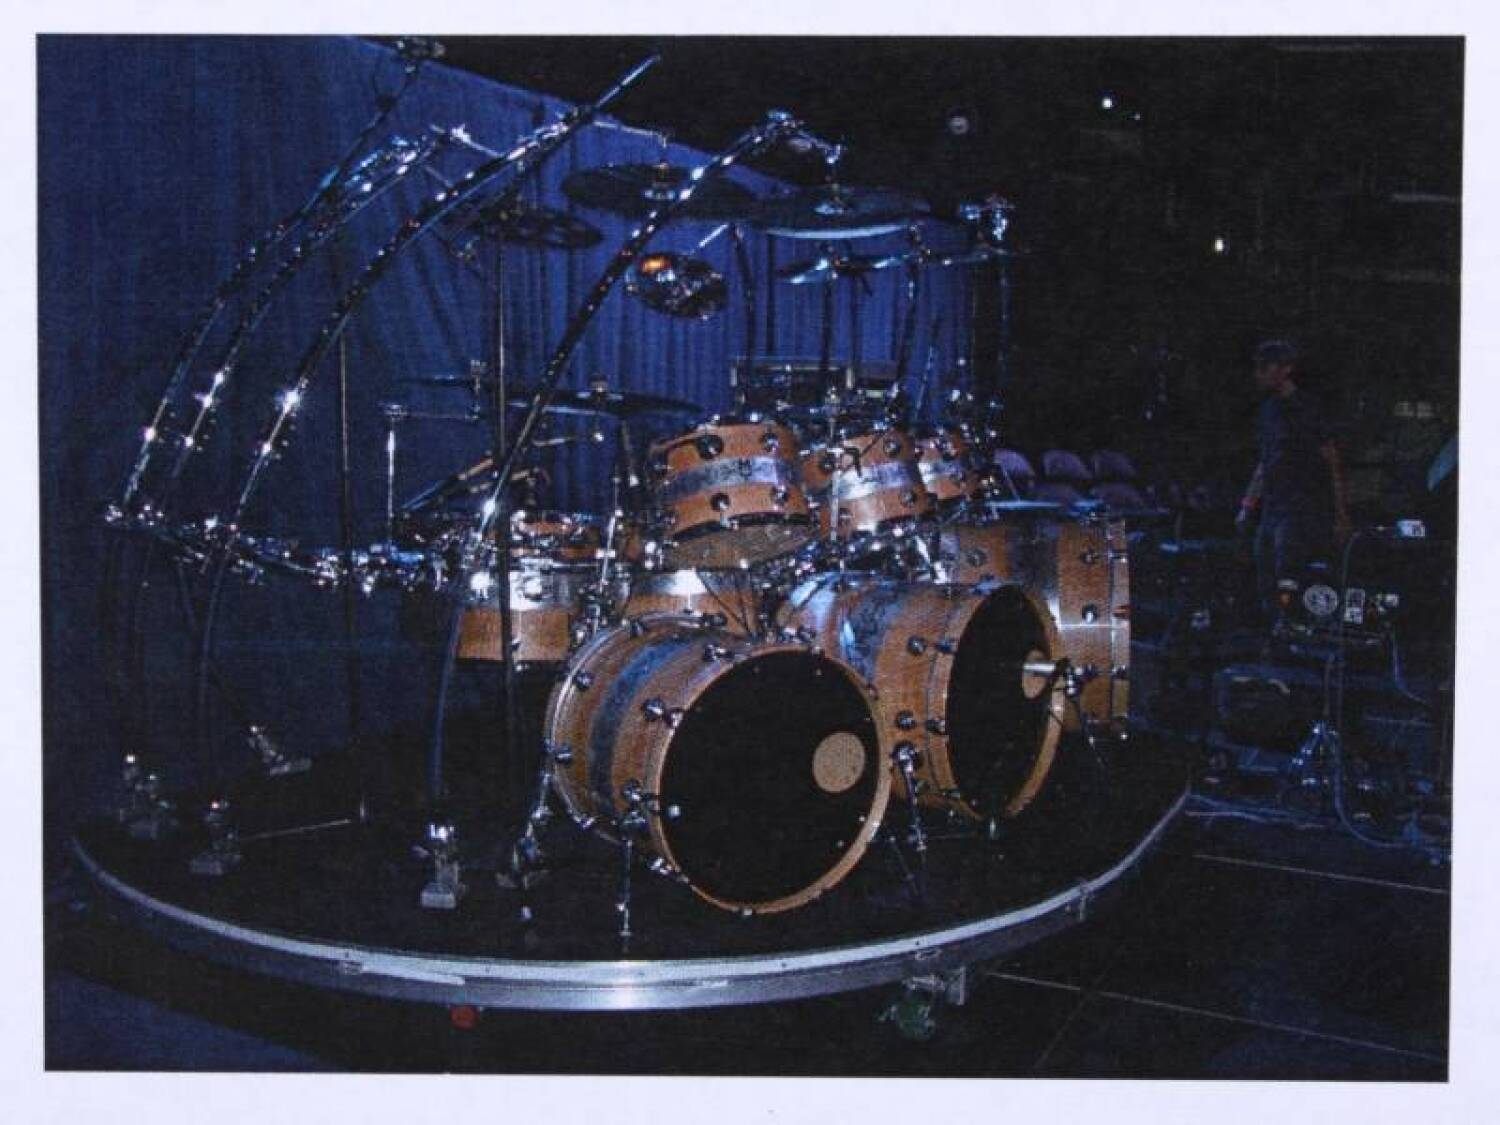 michael jackson this is it tour drum kit